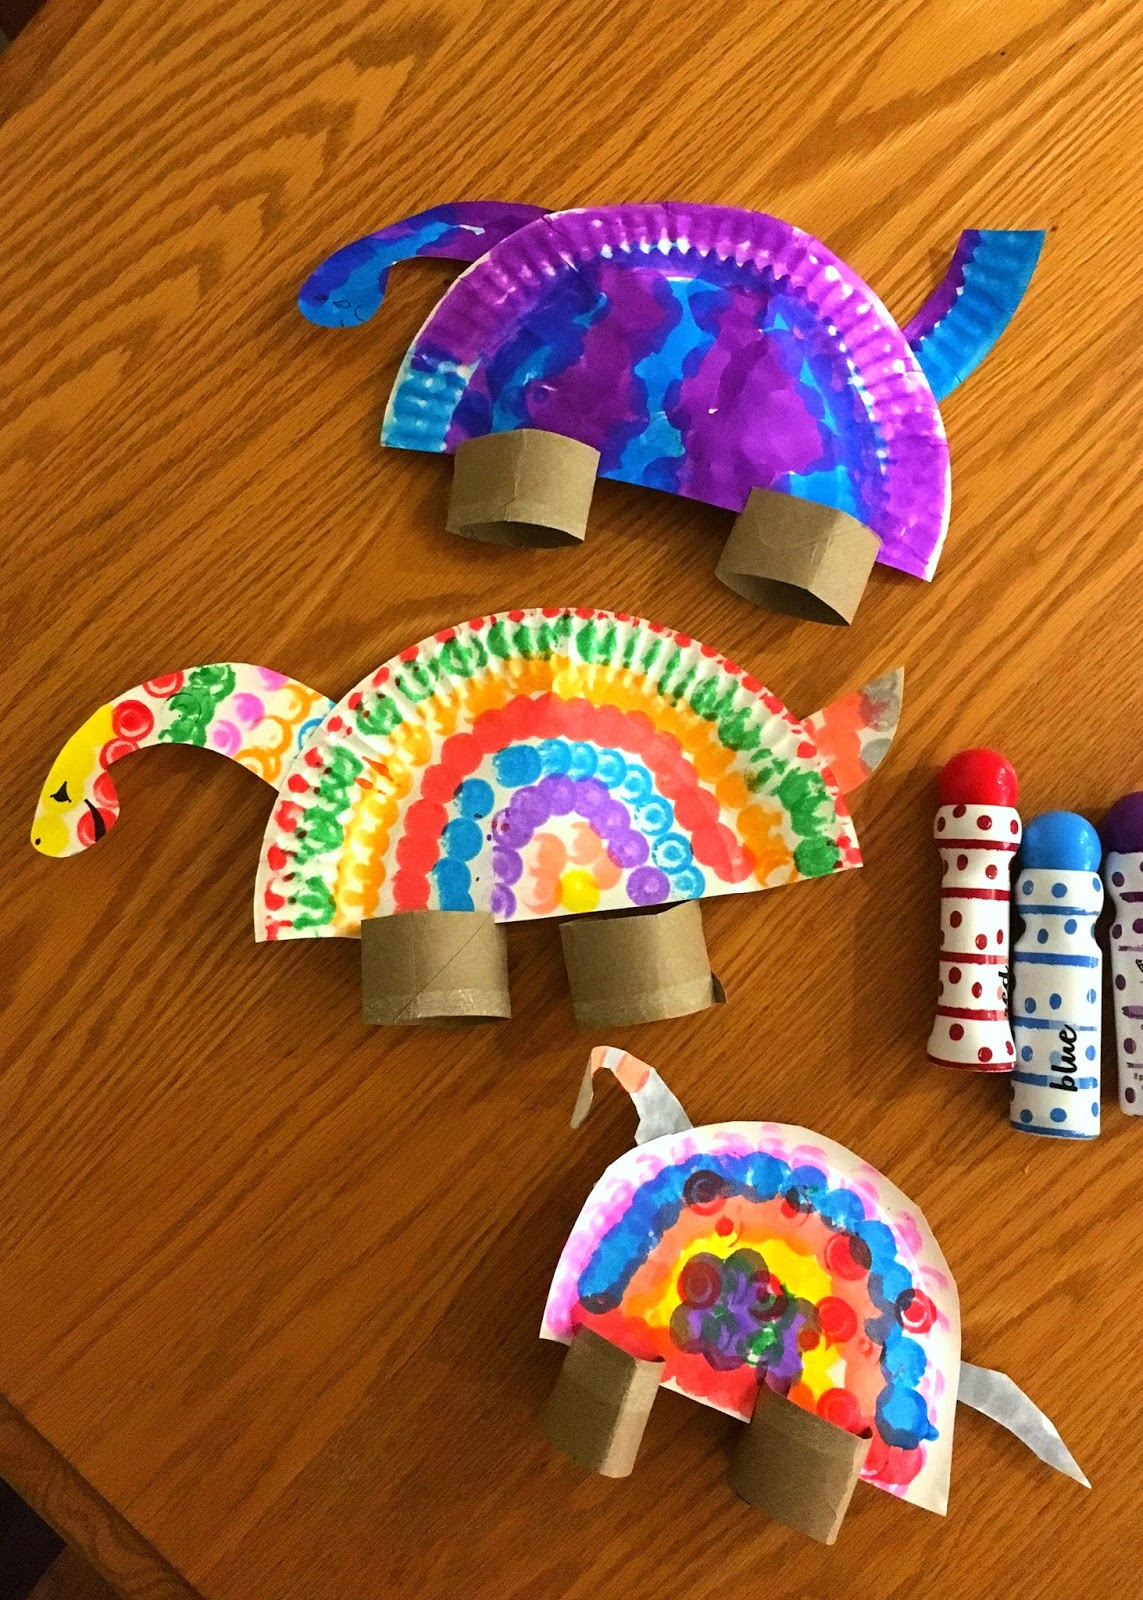 My son was especially proud of his dinosaur that he made. I was so impressed with his creativity! & Toddler Approved!: Colorful Paper Plate Dinosaurs for Kids